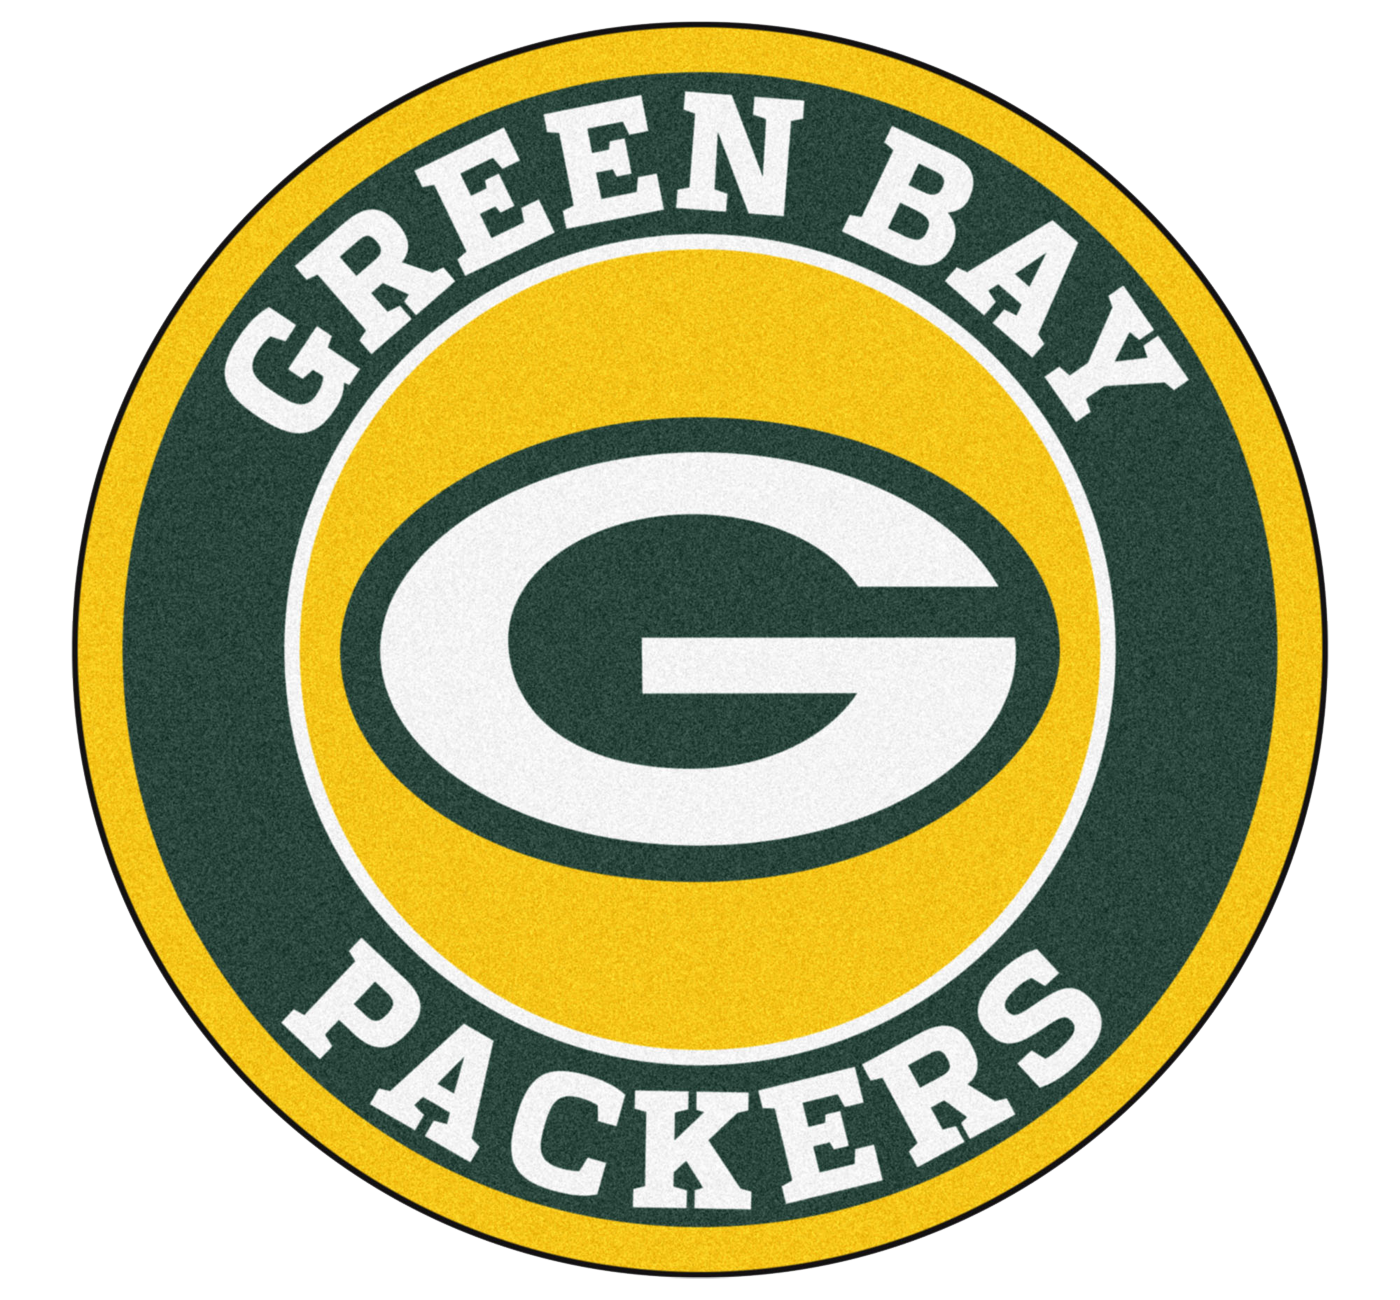 Meaning Green Bay Packers logo and symbol.